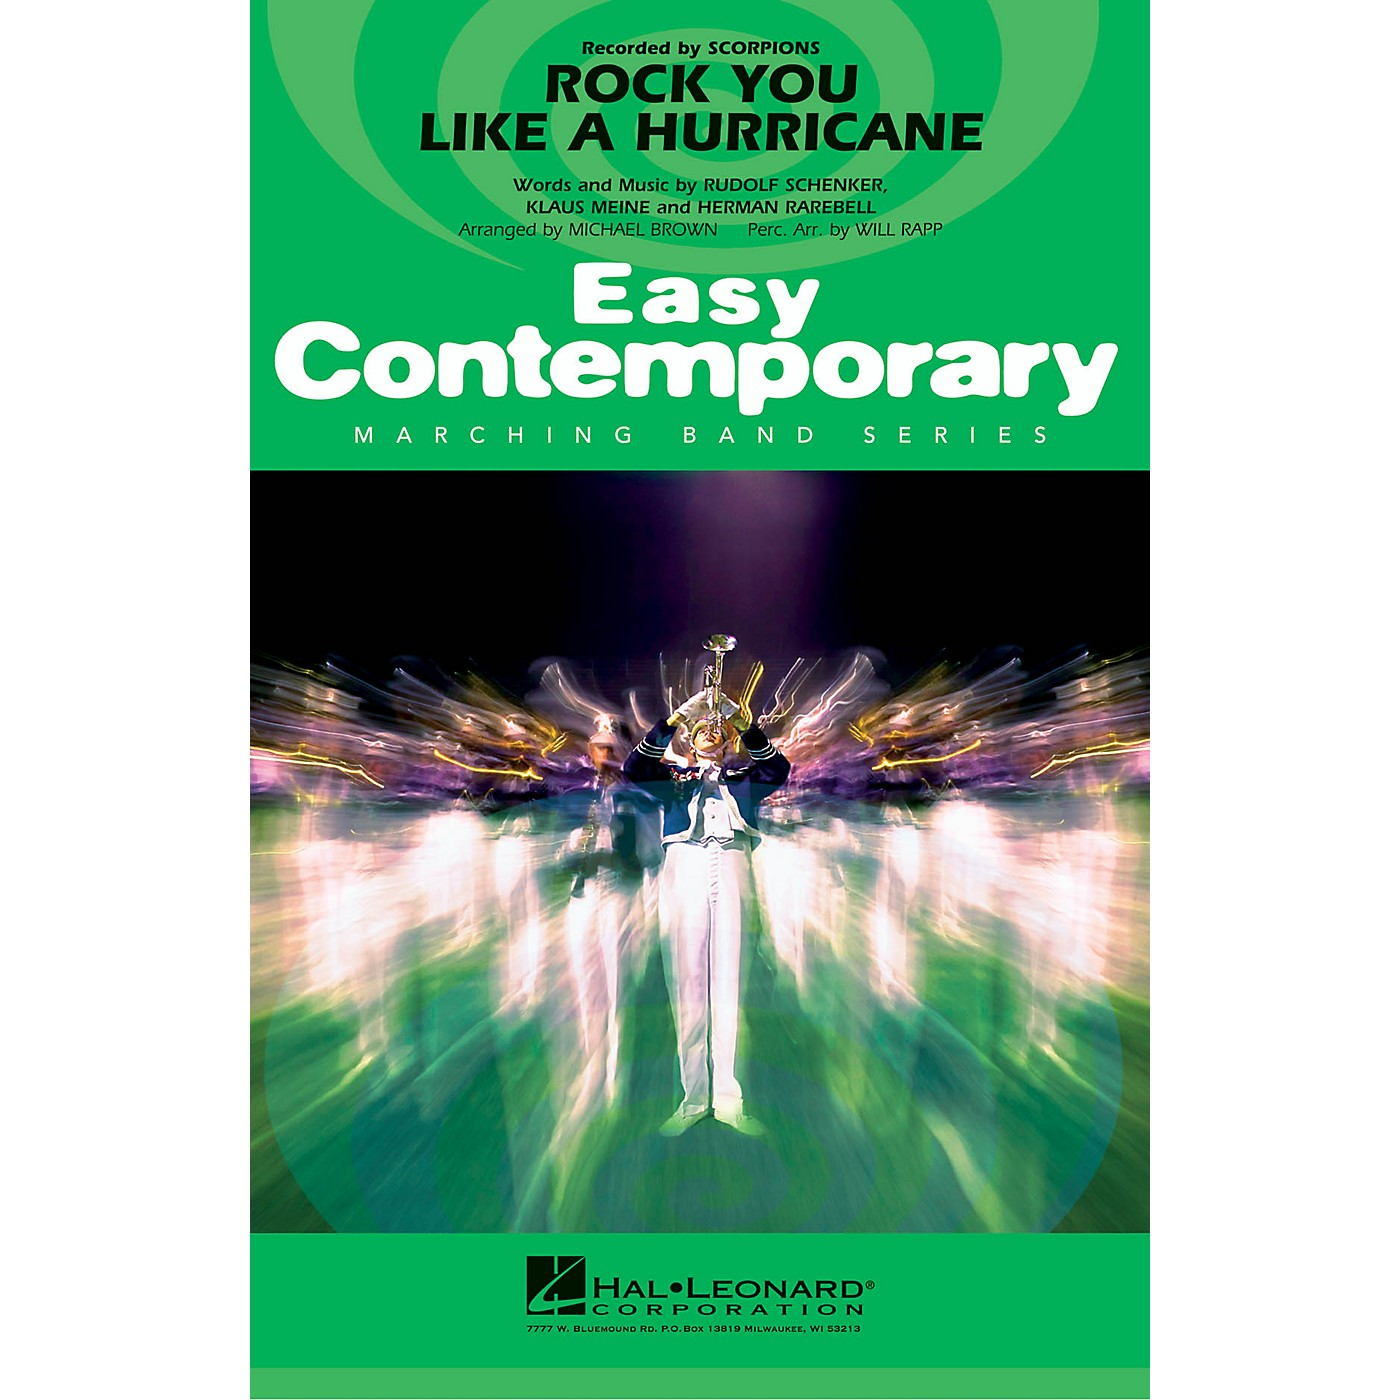 Hal Leonard Rock You Like a Hurricane Marching Band Level 2-3 by Scorpions Arranged by Michael Brown thumbnail